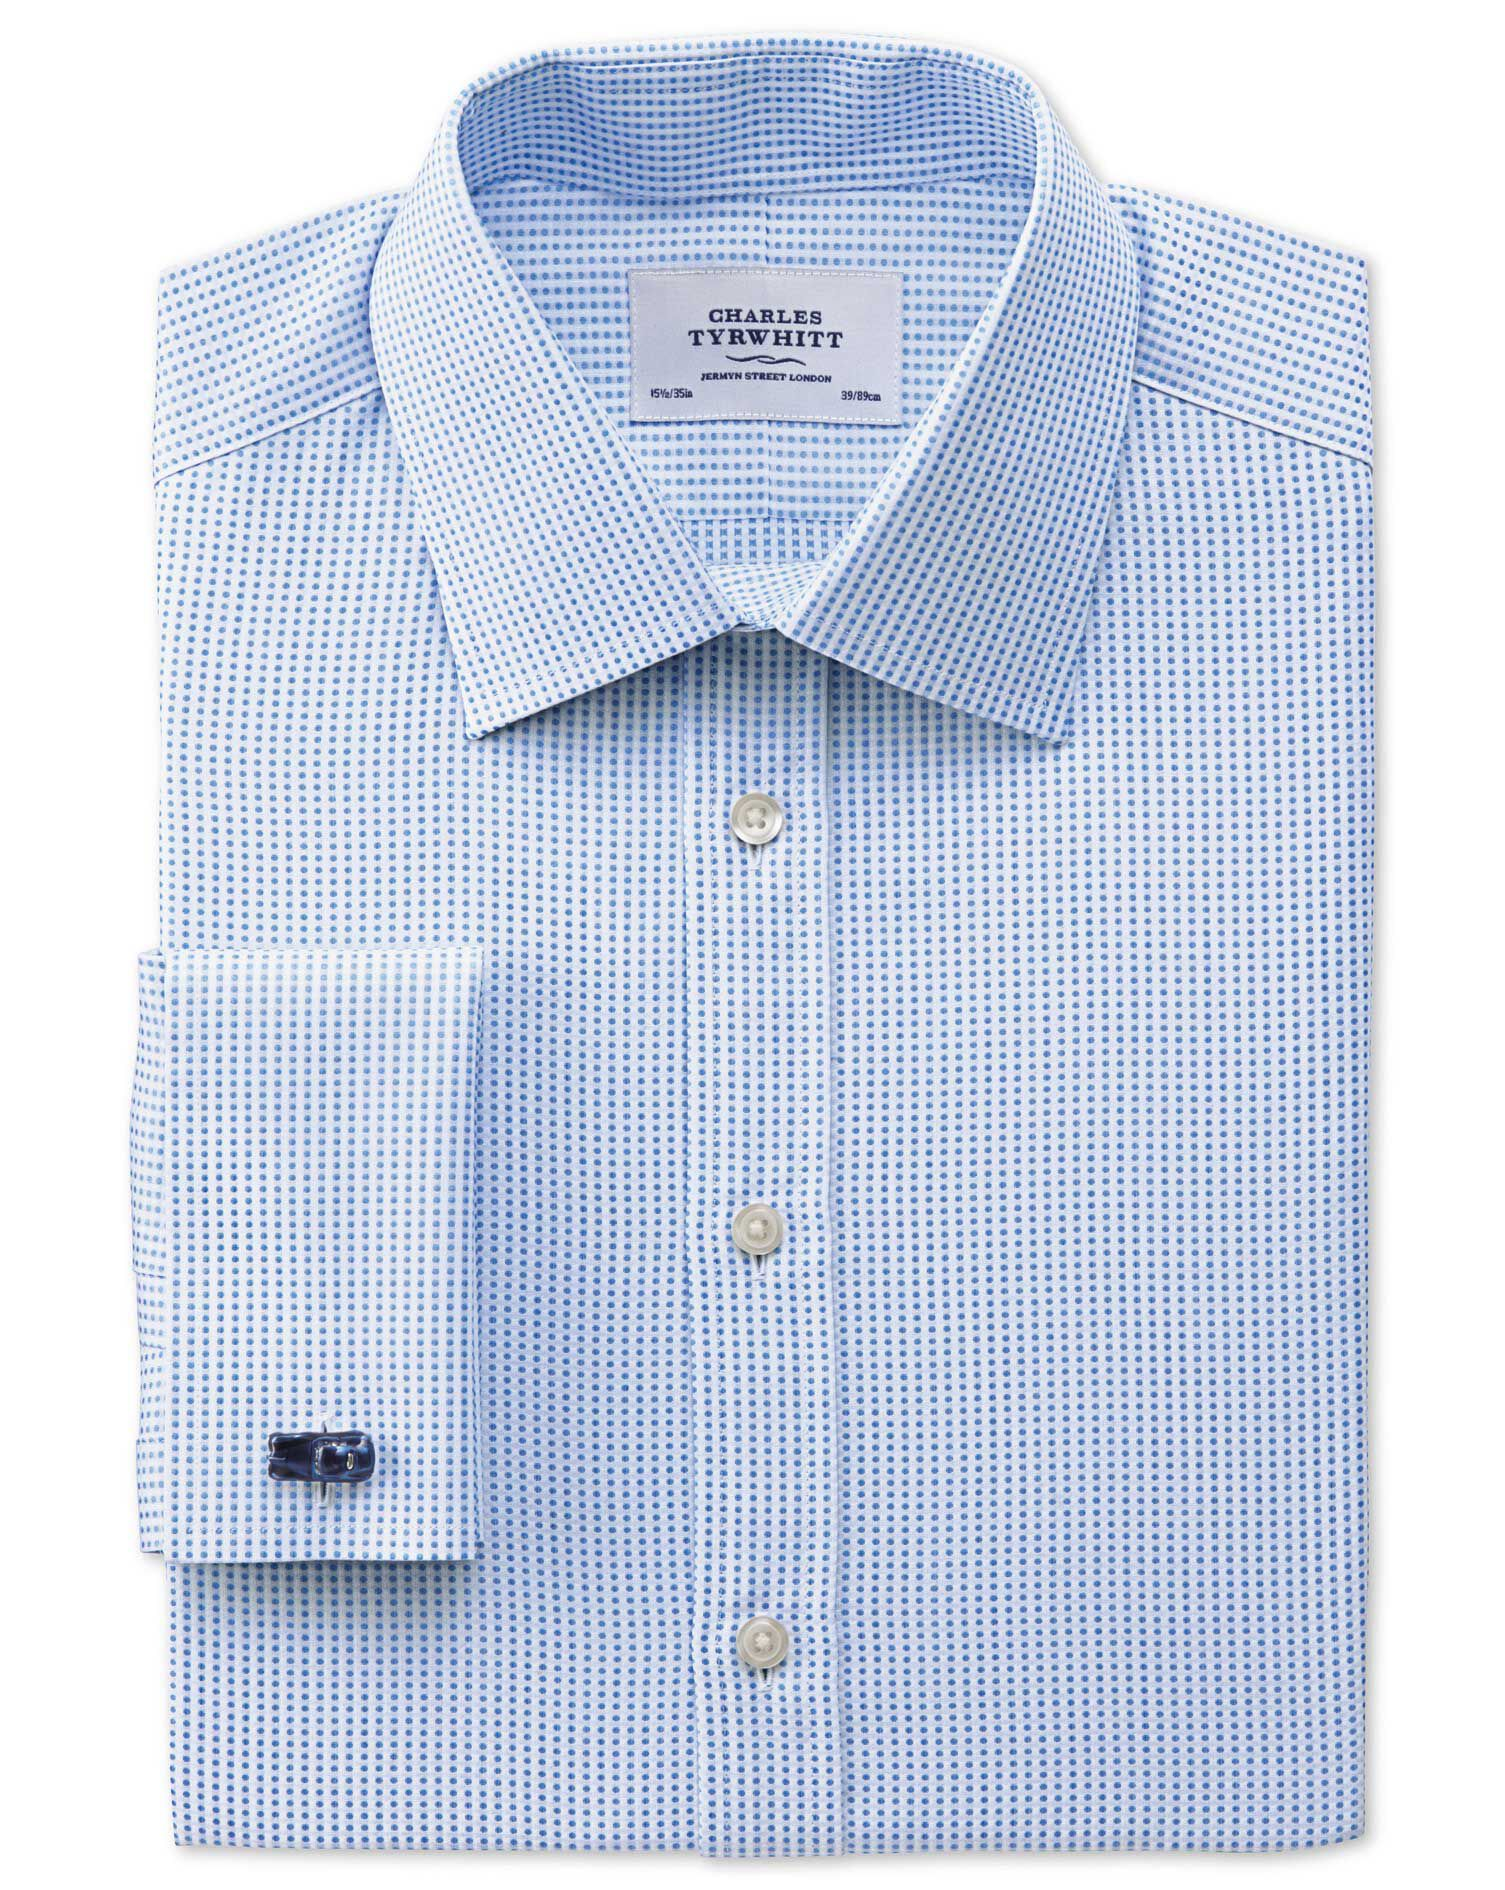 Extra Slim Fit Pima Cotton Double-Faced Sky Blue Formal Shirt Double Cuff Size 15/32 by Charles Tyrw